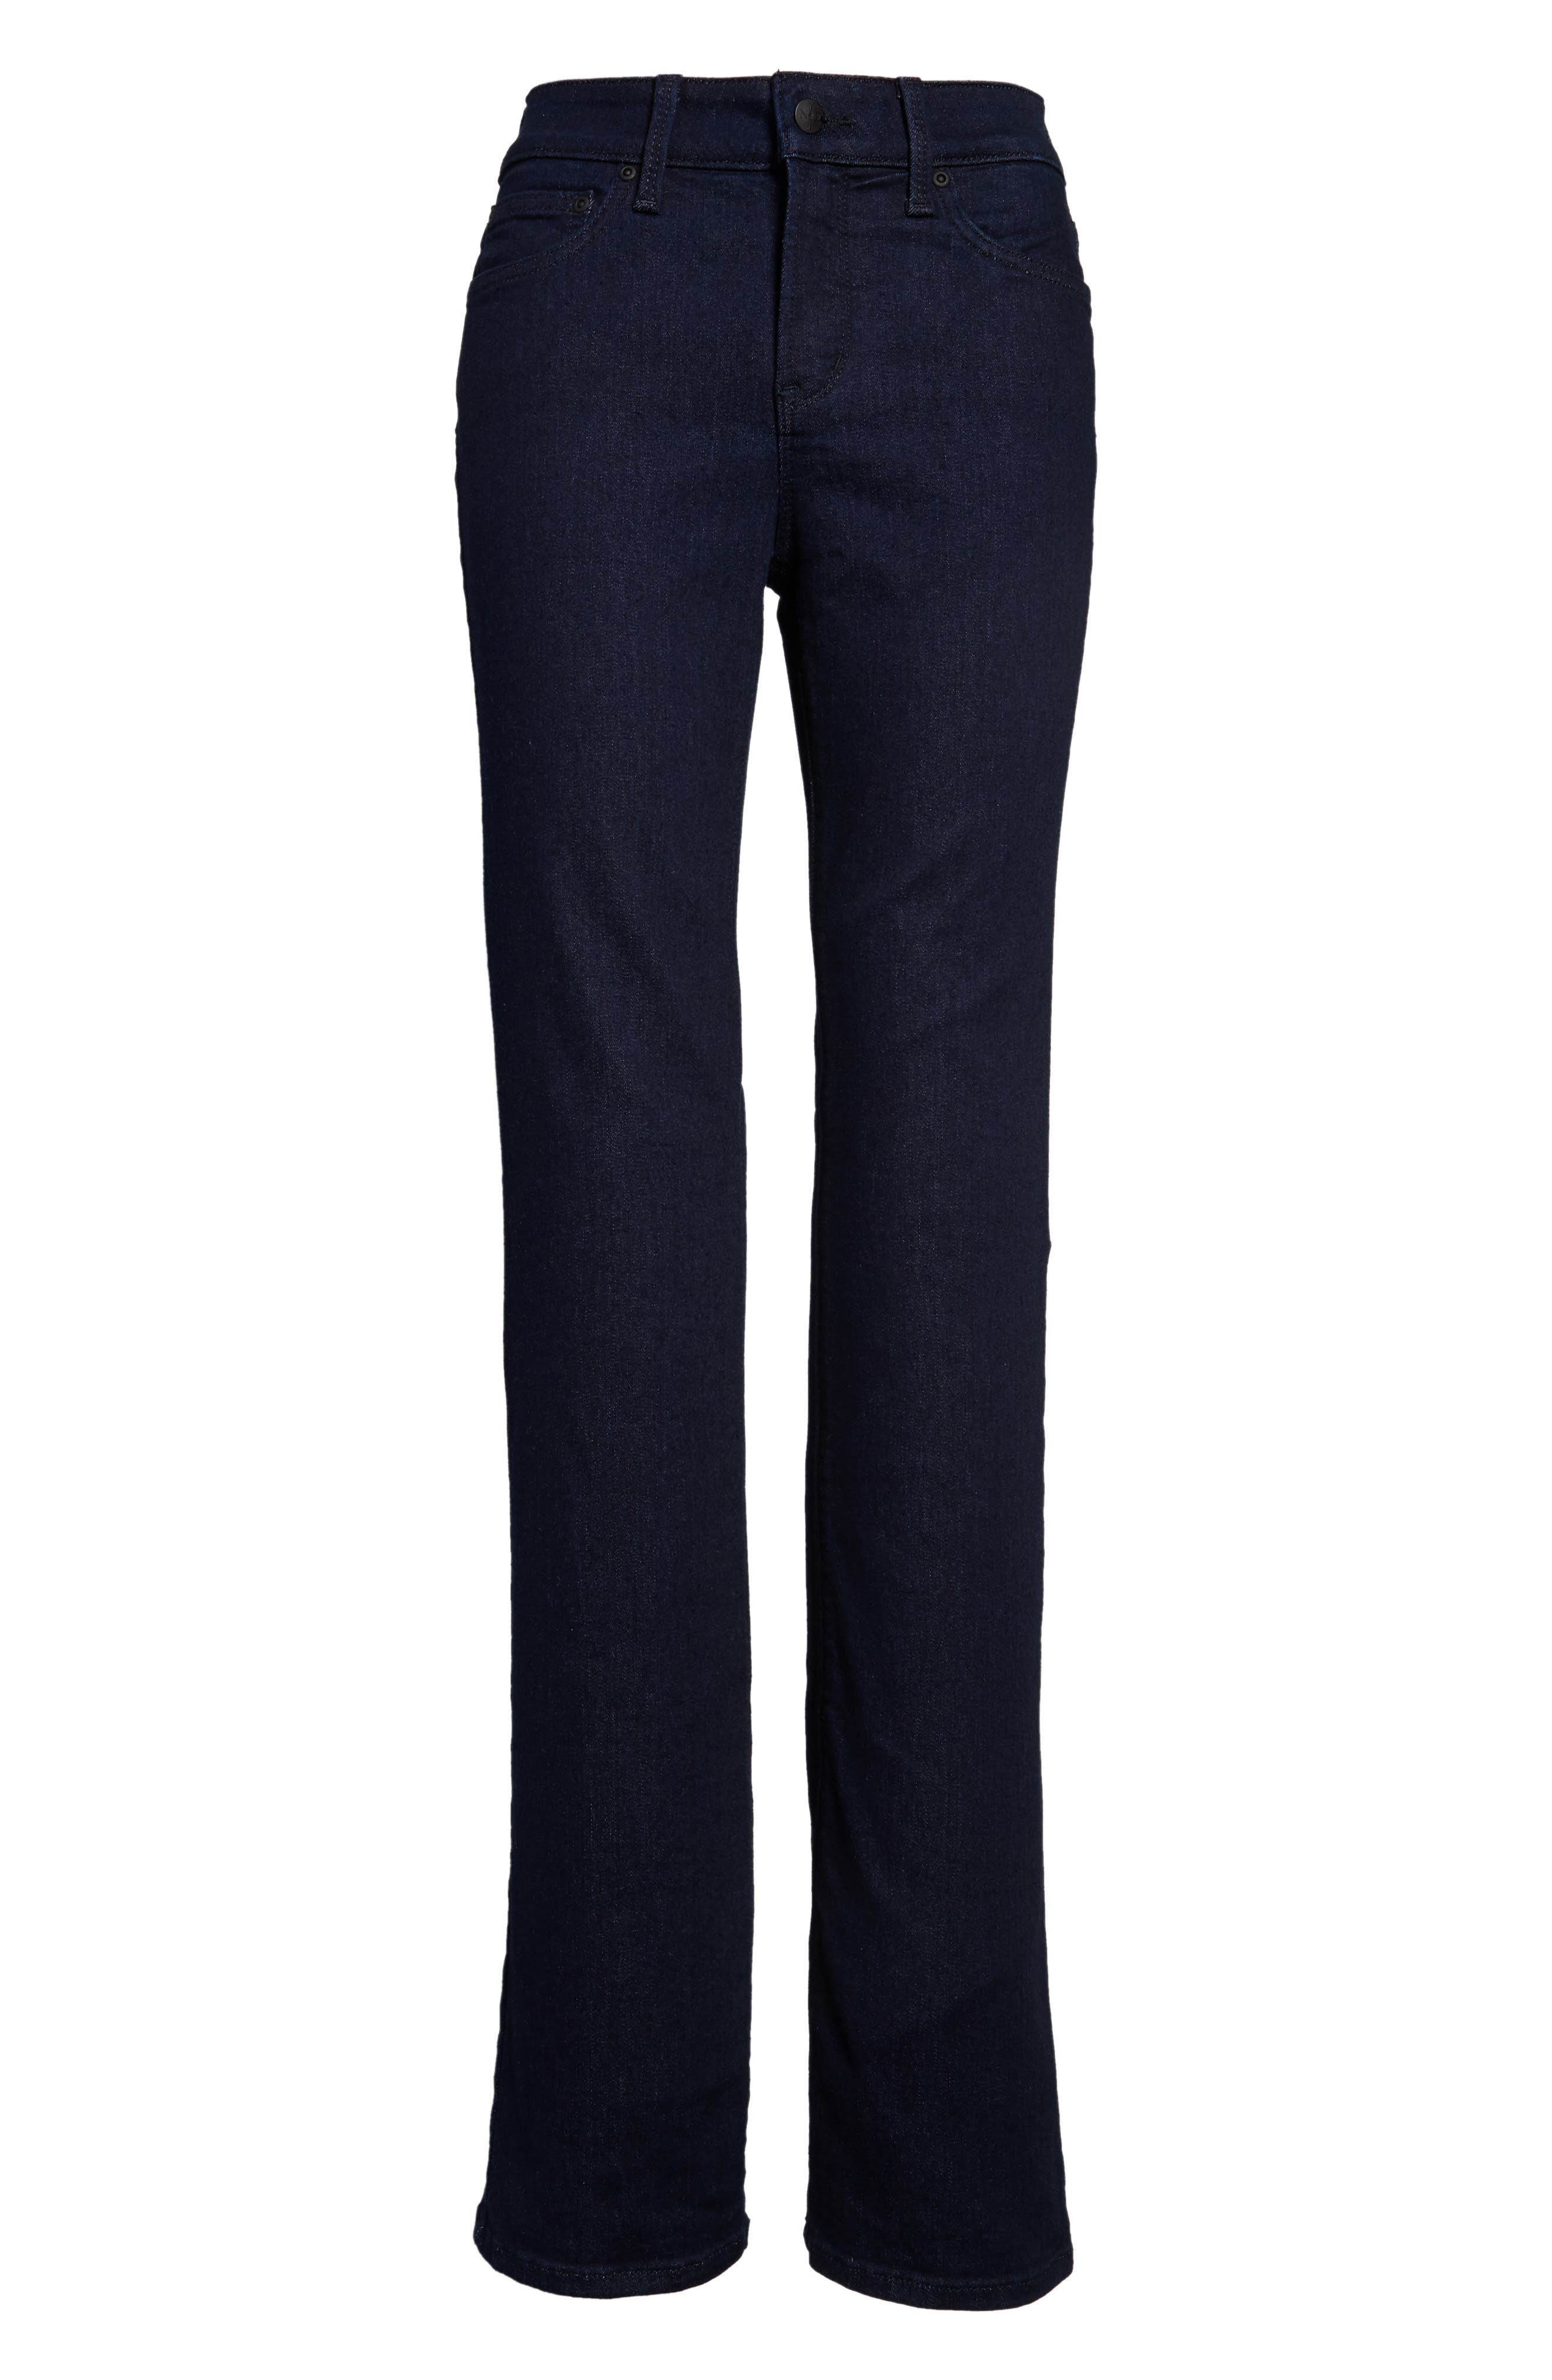 Barbara High Waist Stretch Bootcut Jeans,                             Alternate thumbnail 4, color,                             RINSE